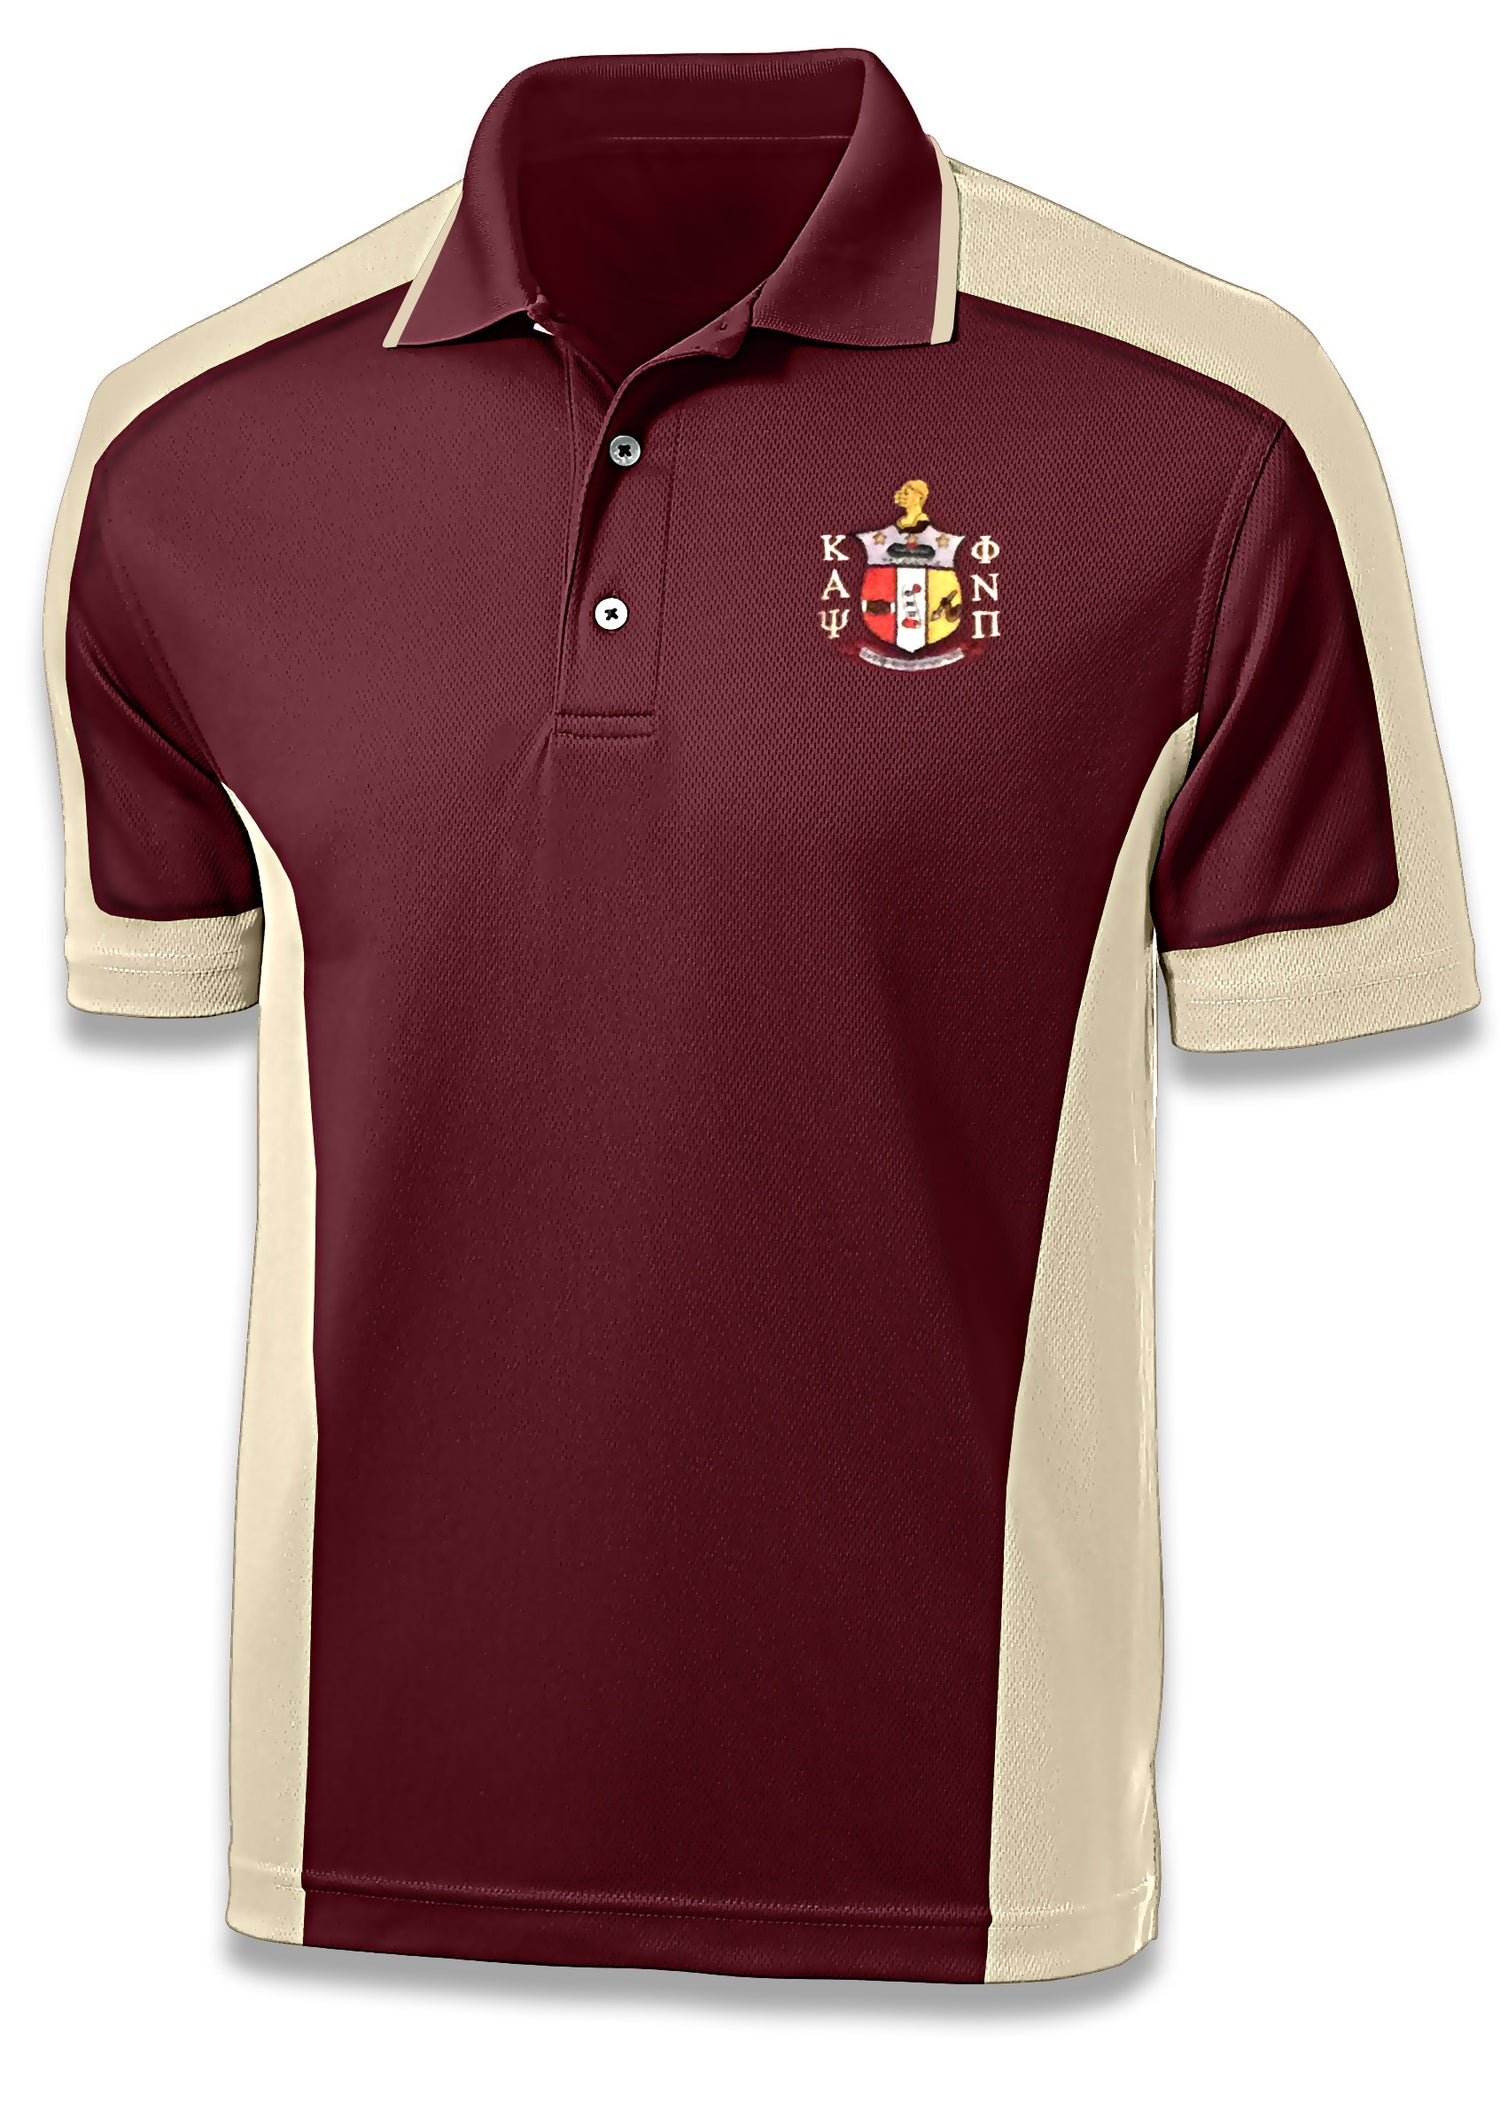 Image of Coat of Arms Sport Polo - Crimson/Cream Two-Tone